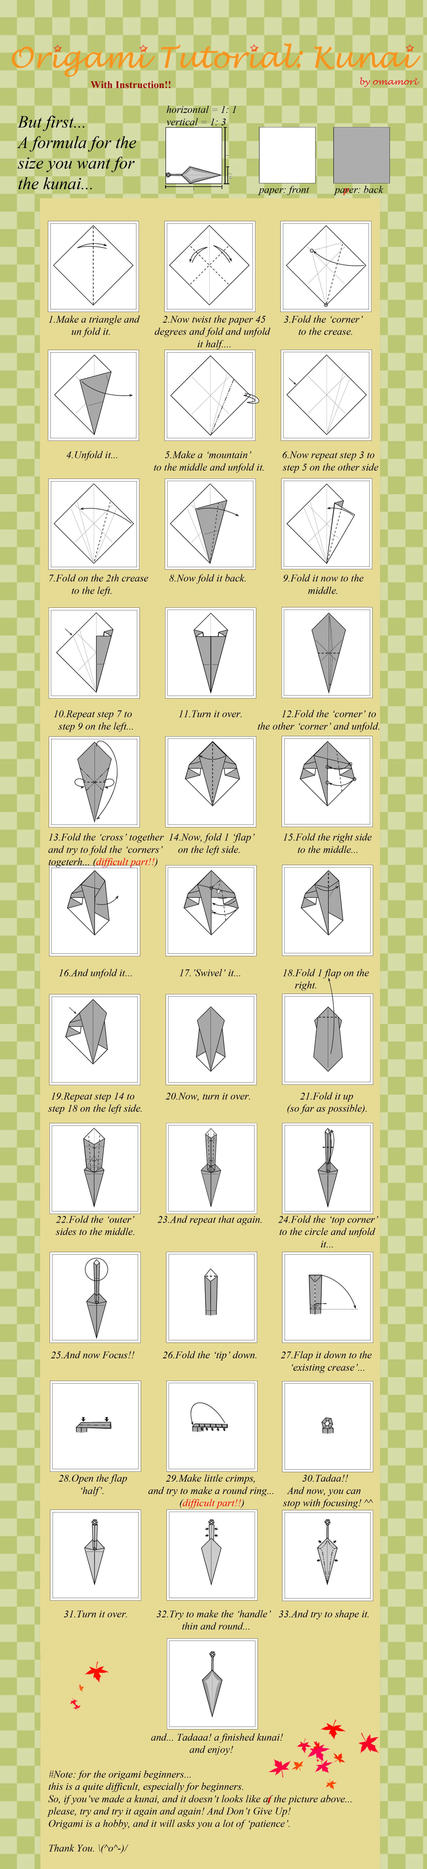 Origami Sword Diagrams 2551162 Narsil Origamiyard This Page Contains All Info About